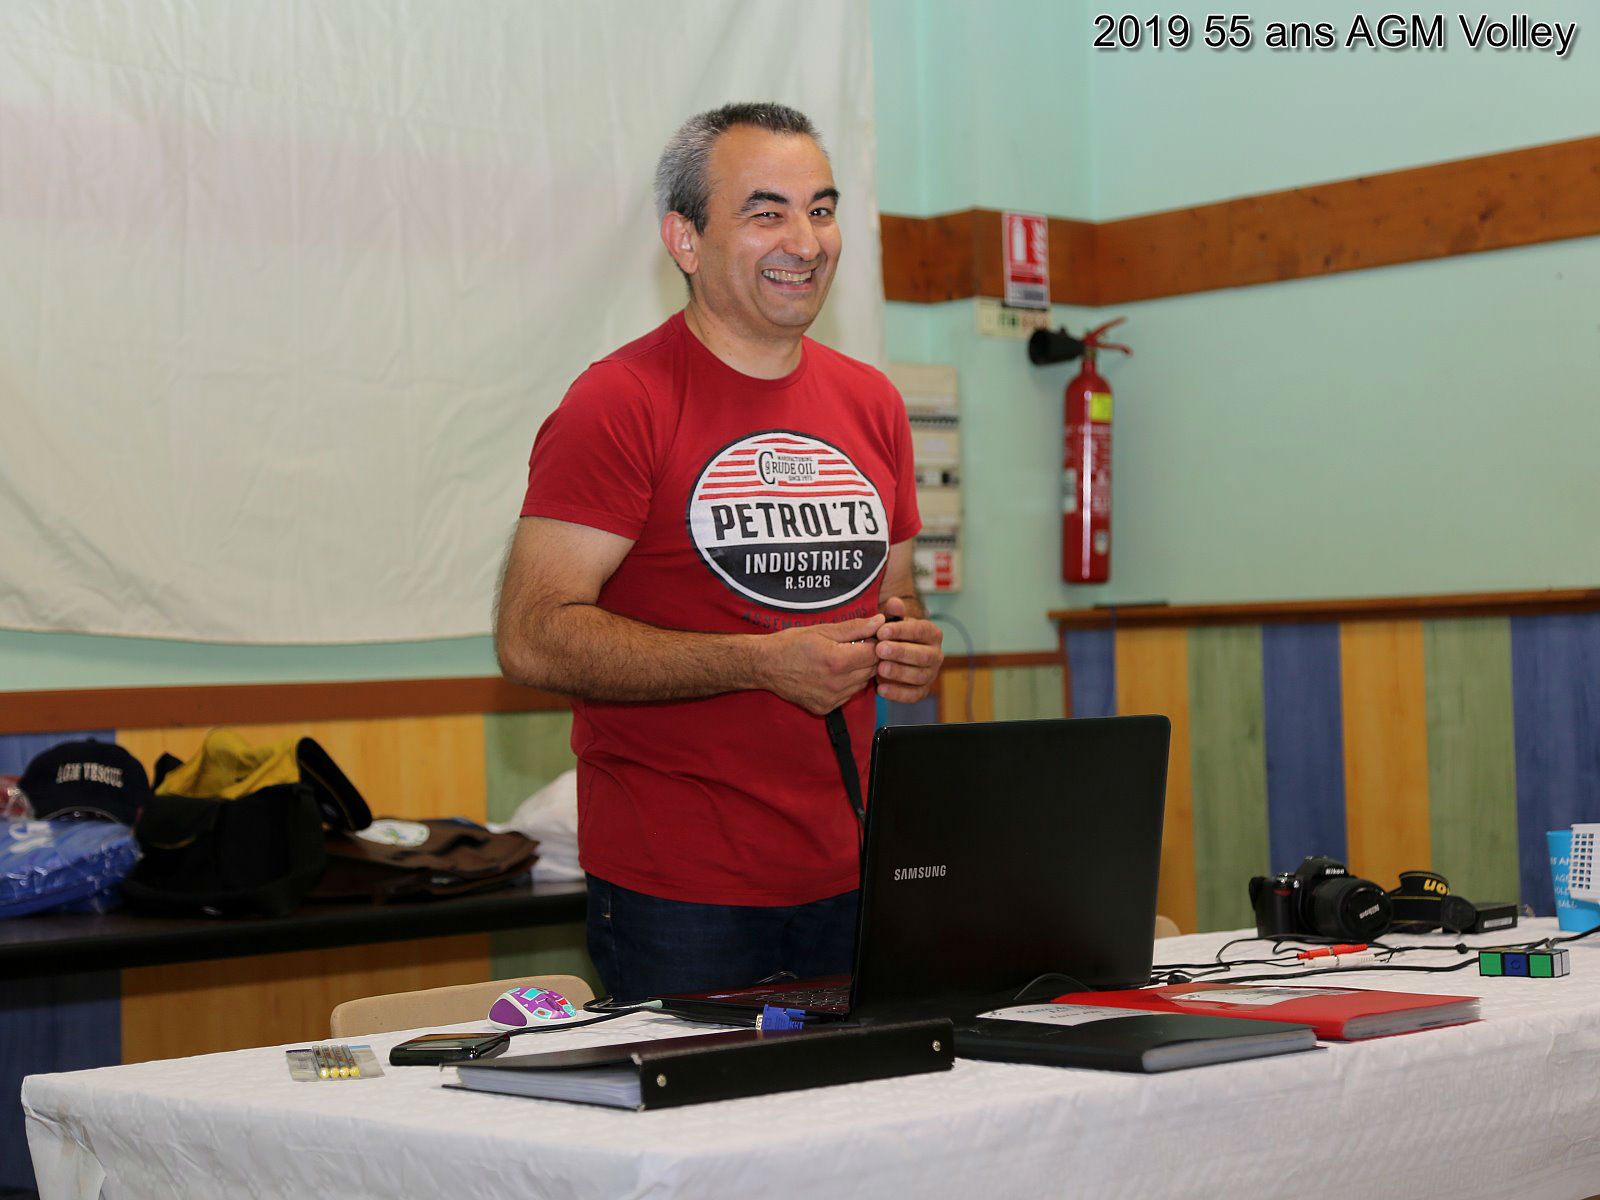 2019_55 ans AGM Volley_004